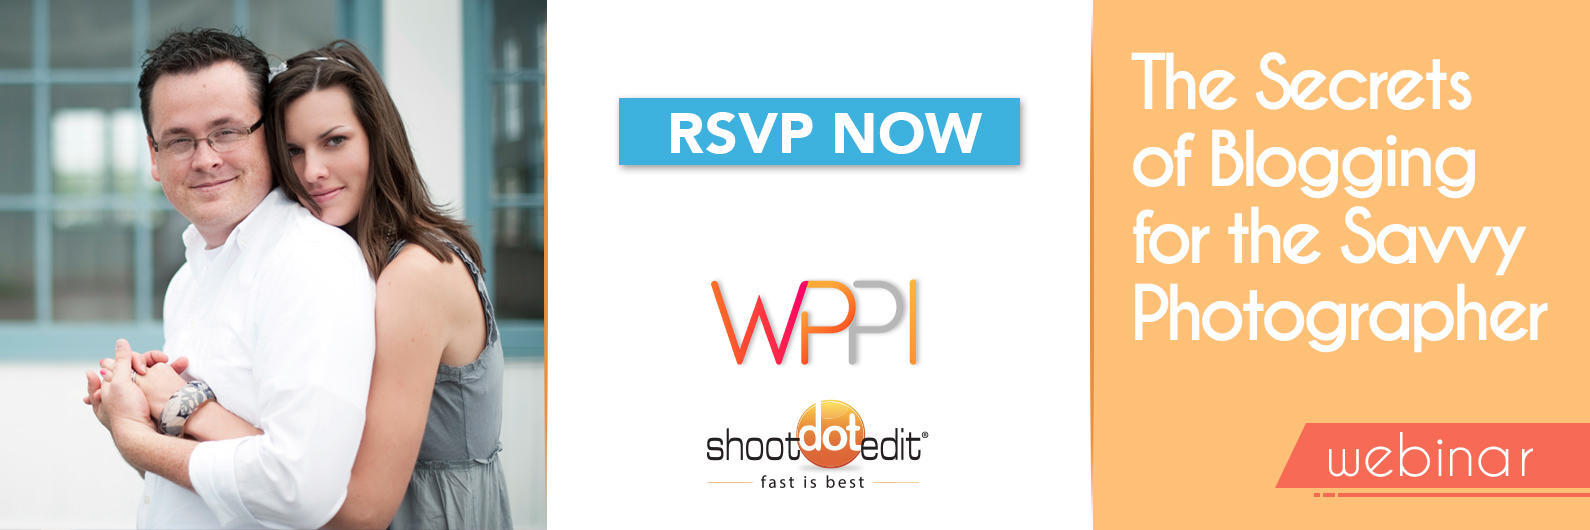 Blogging_webinar_shootdotedit